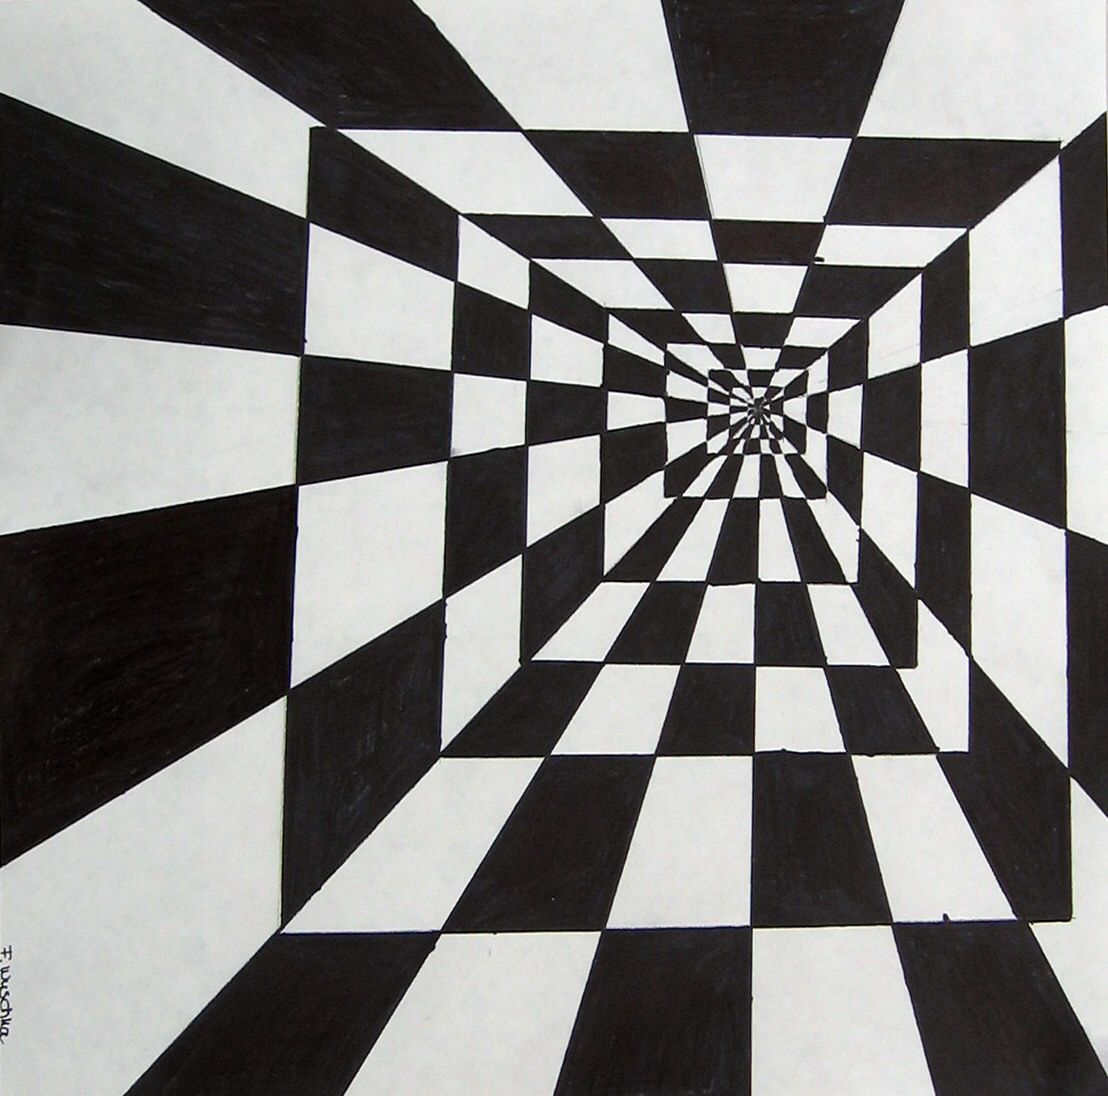 Tunnel Illusion Drawings Optical Illusions Art